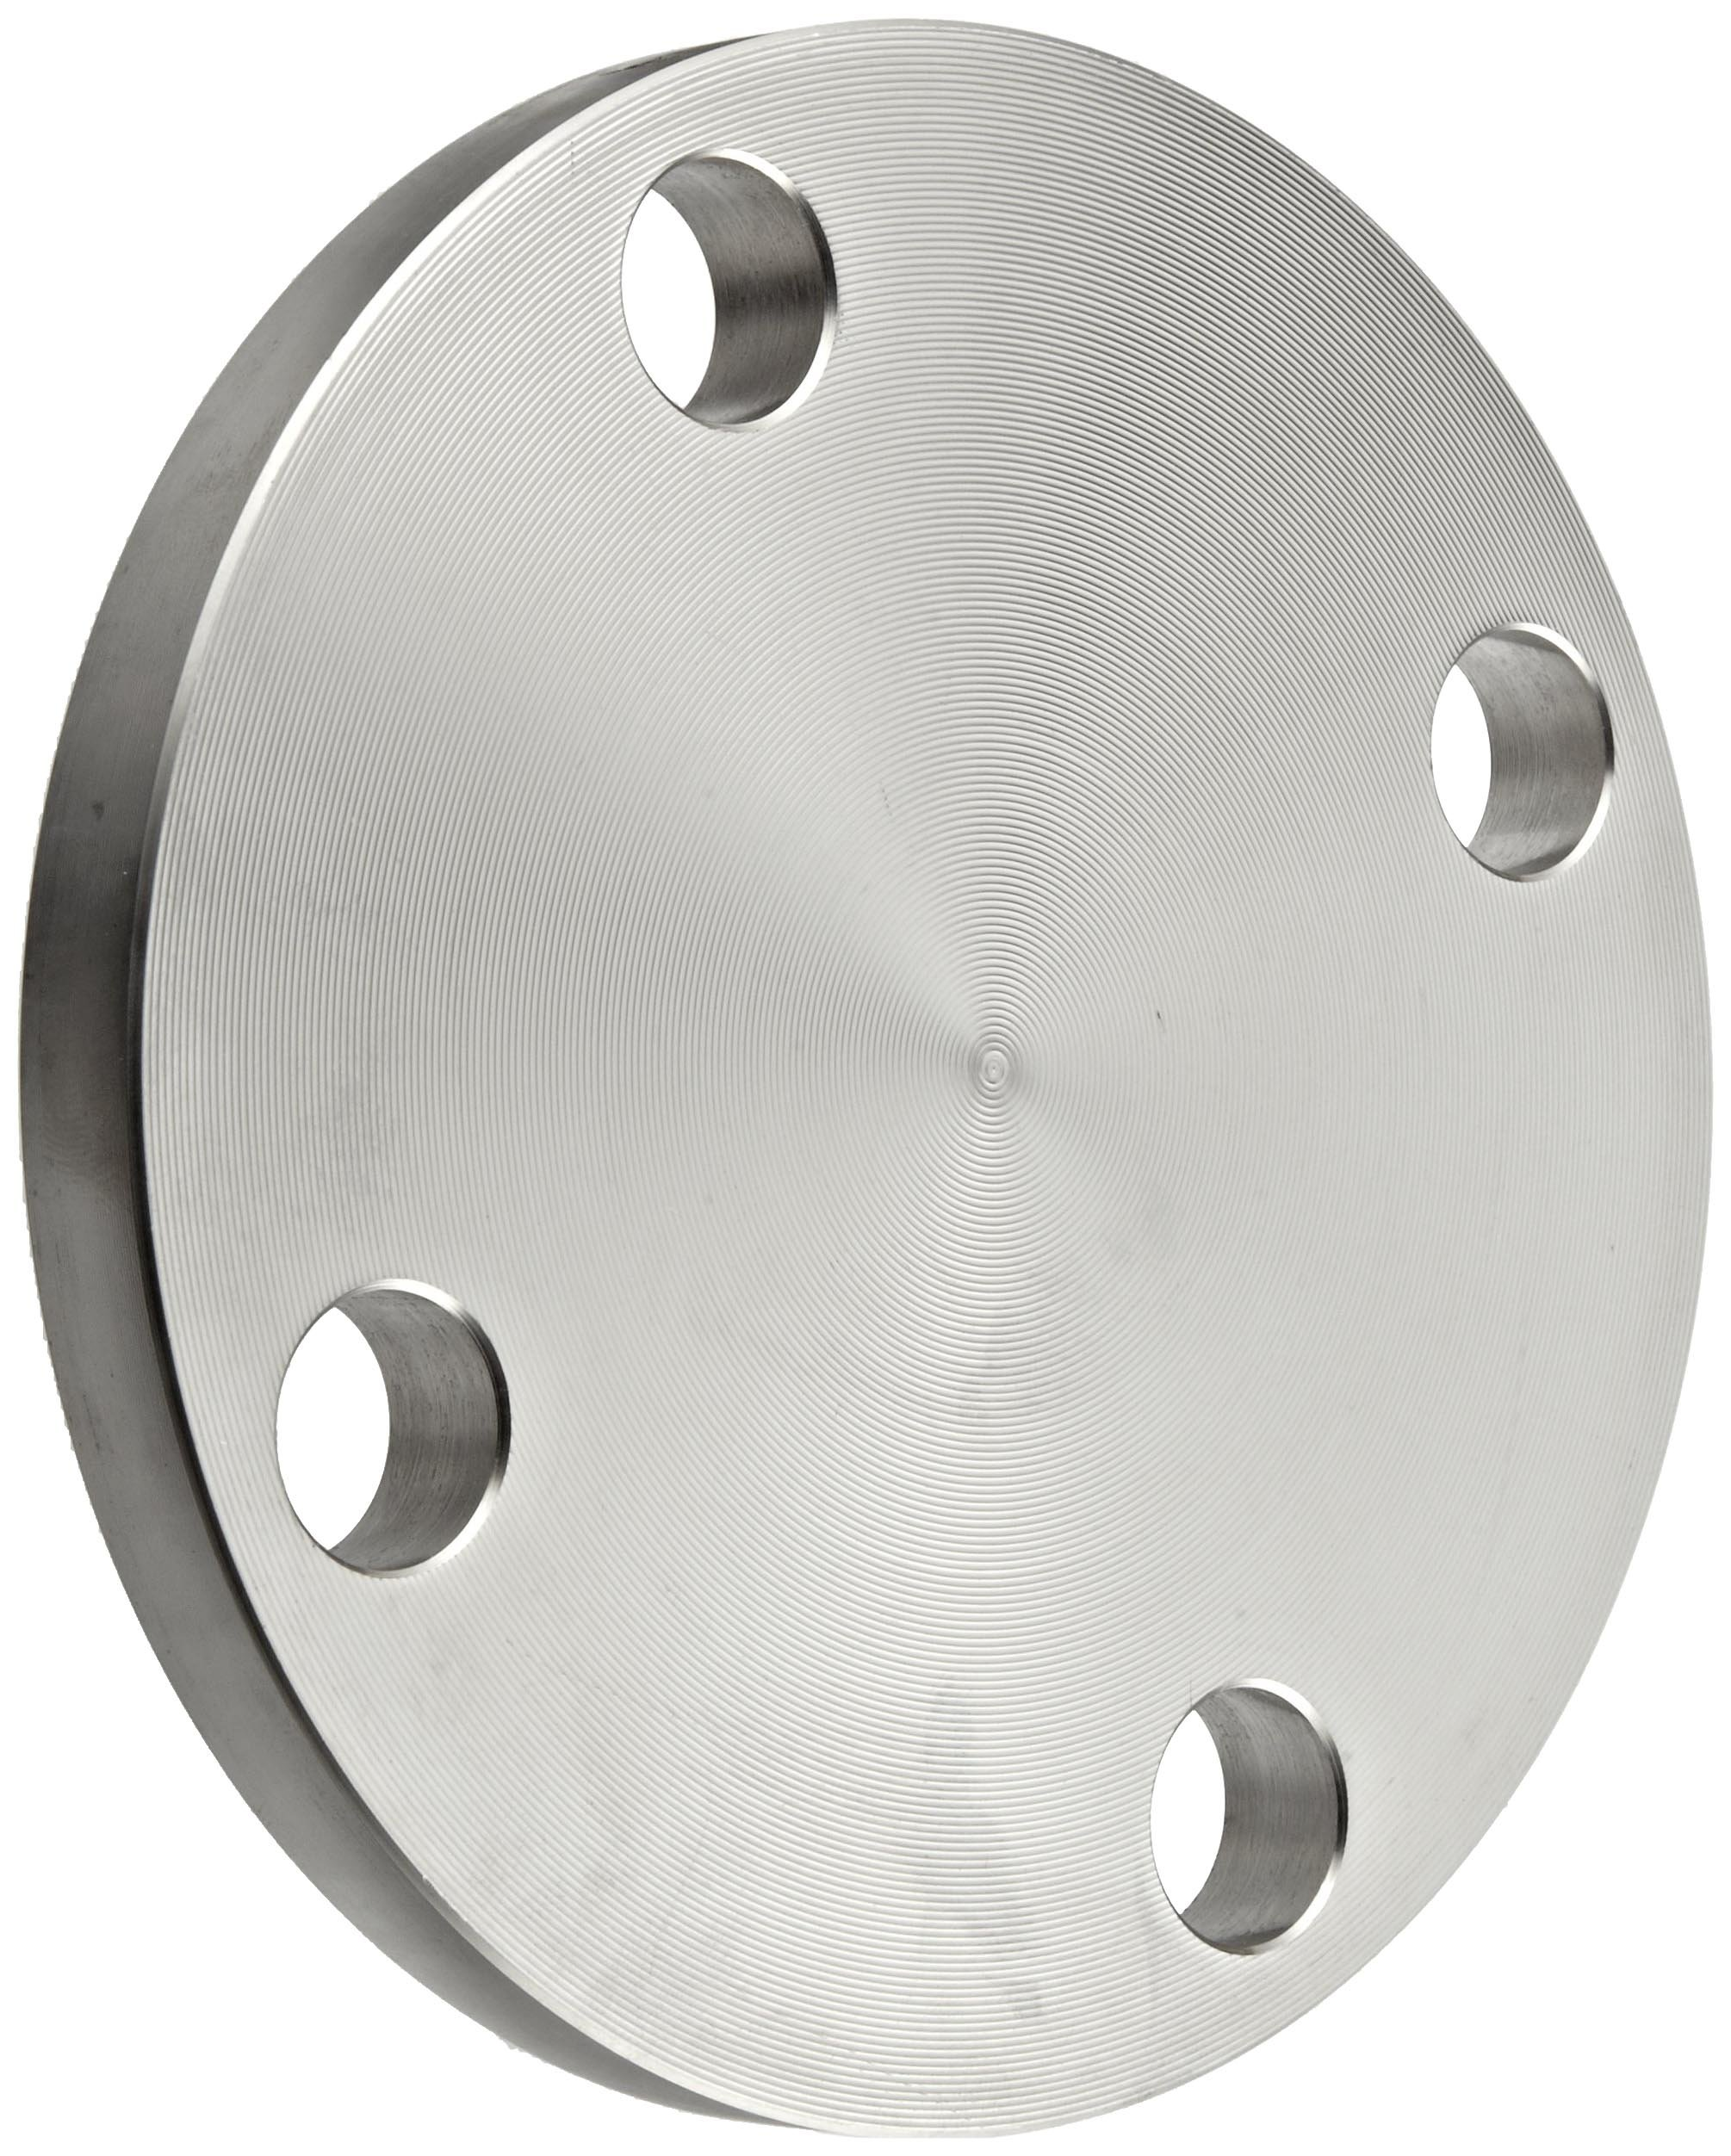 Stainless Steel 304/304L Plate Pipe Fitting, Flange, Blind, Class 150, 6'' Pipe Size